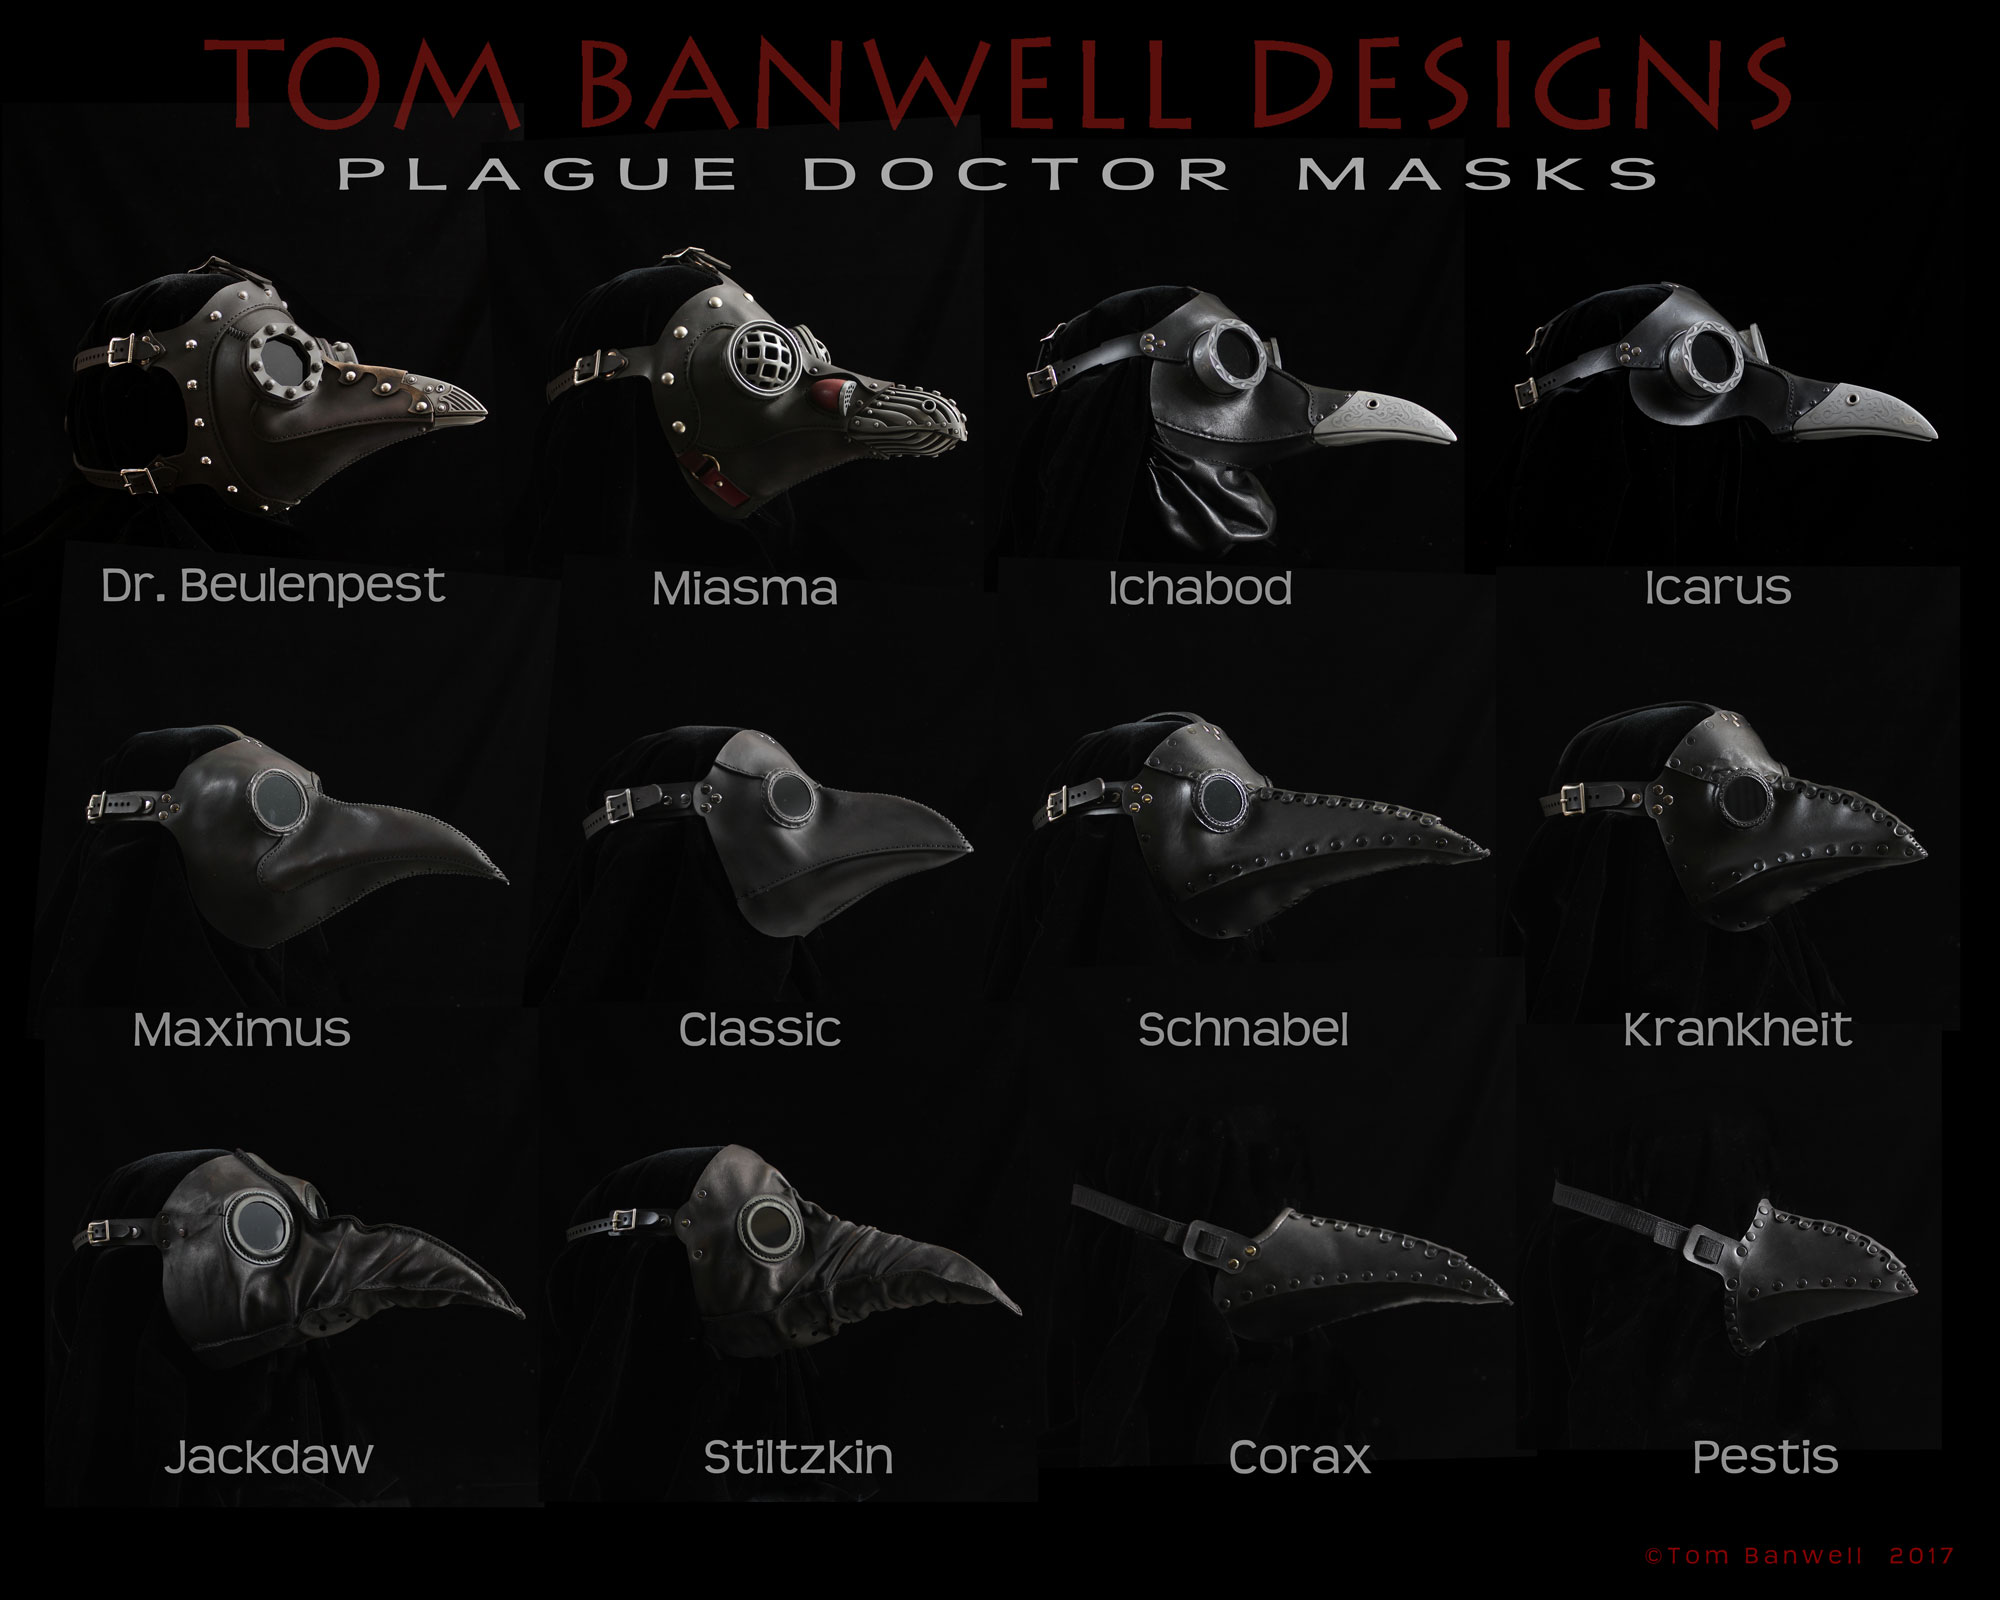 We offer a wide selection of plague doctor masks as seen in this side-by-side comparison, from fancy steampunk at upper left to simple beak mask in lower right.